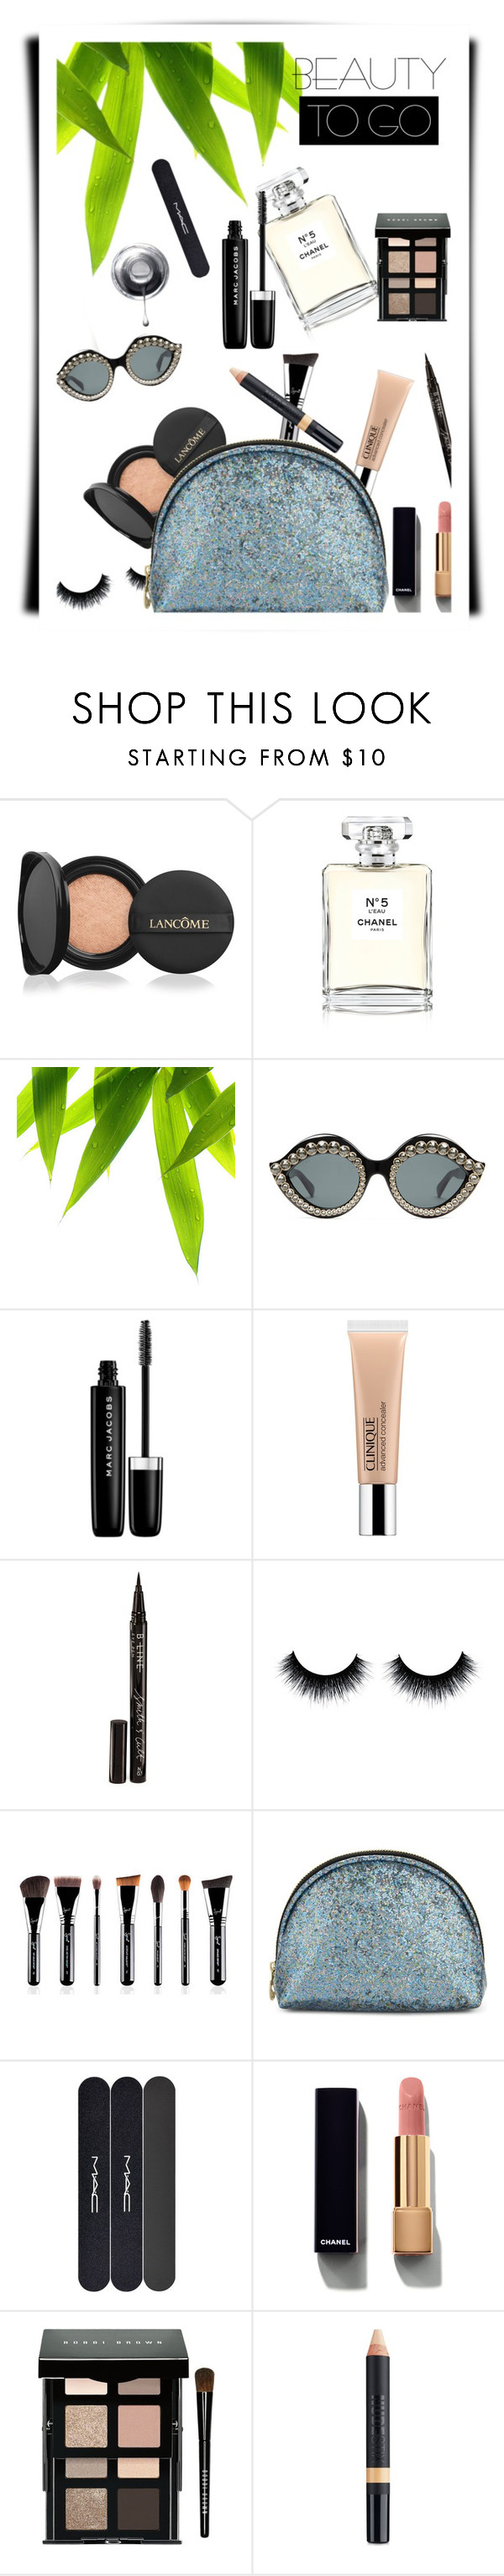 """""""#travelbeauty"""" by rasa-j ❤ liked on Polyvore featuring beauty, Lancôme, Chanel, Gucci, Marc Jacobs, Clinique, Smith & Cult, Sweet and Sour, MAC Cosmetics and Bobbi Brown Cosmetics"""